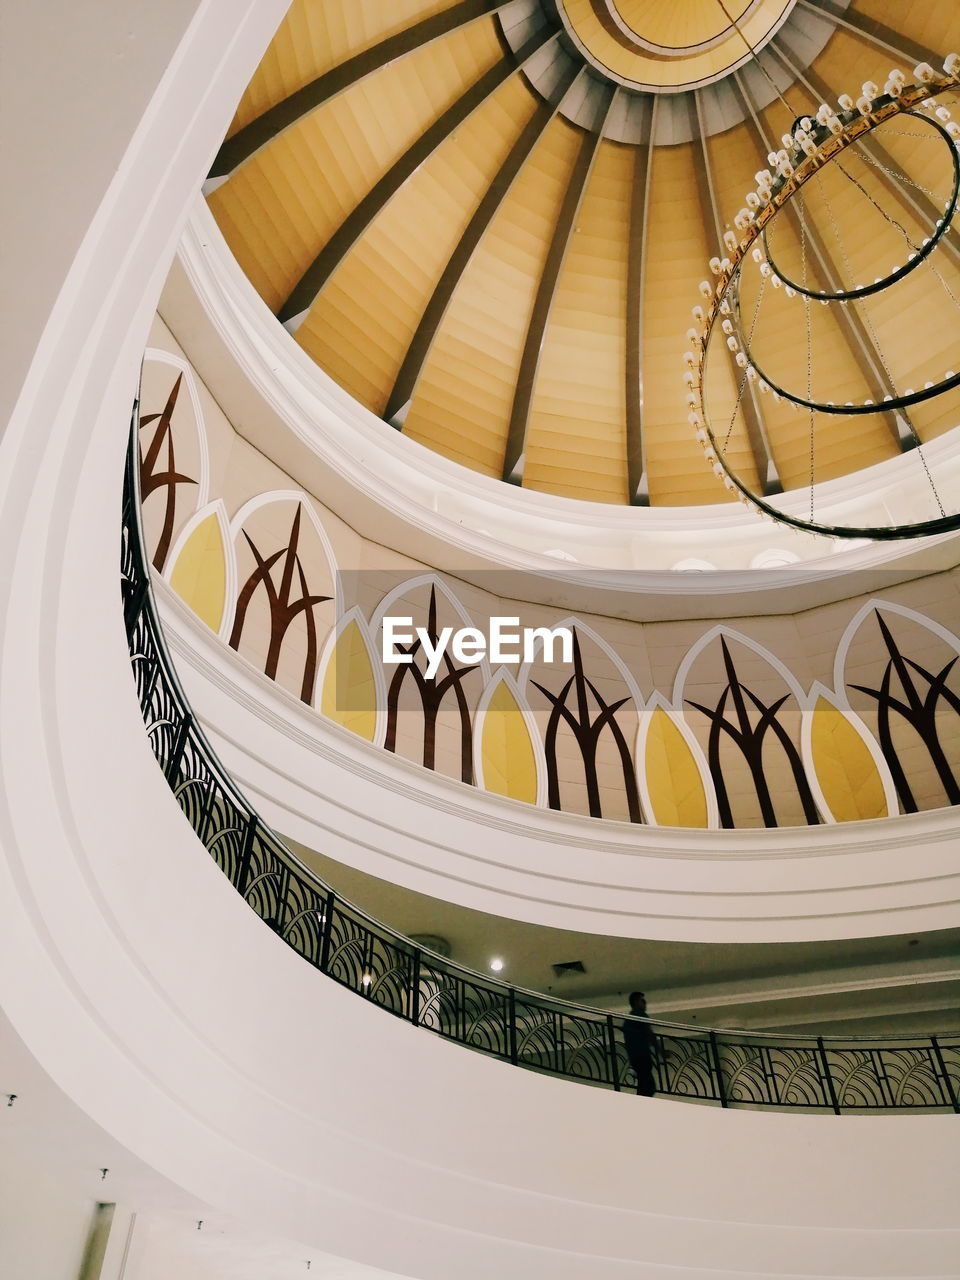 indoors, built structure, railing, architecture, pattern, spiral, steps and staircases, no people, staircase, low angle view, spiral staircase, design, close-up, ceiling, curve, decoration, white color, shape, architectural feature, ornate, directly below, luxury